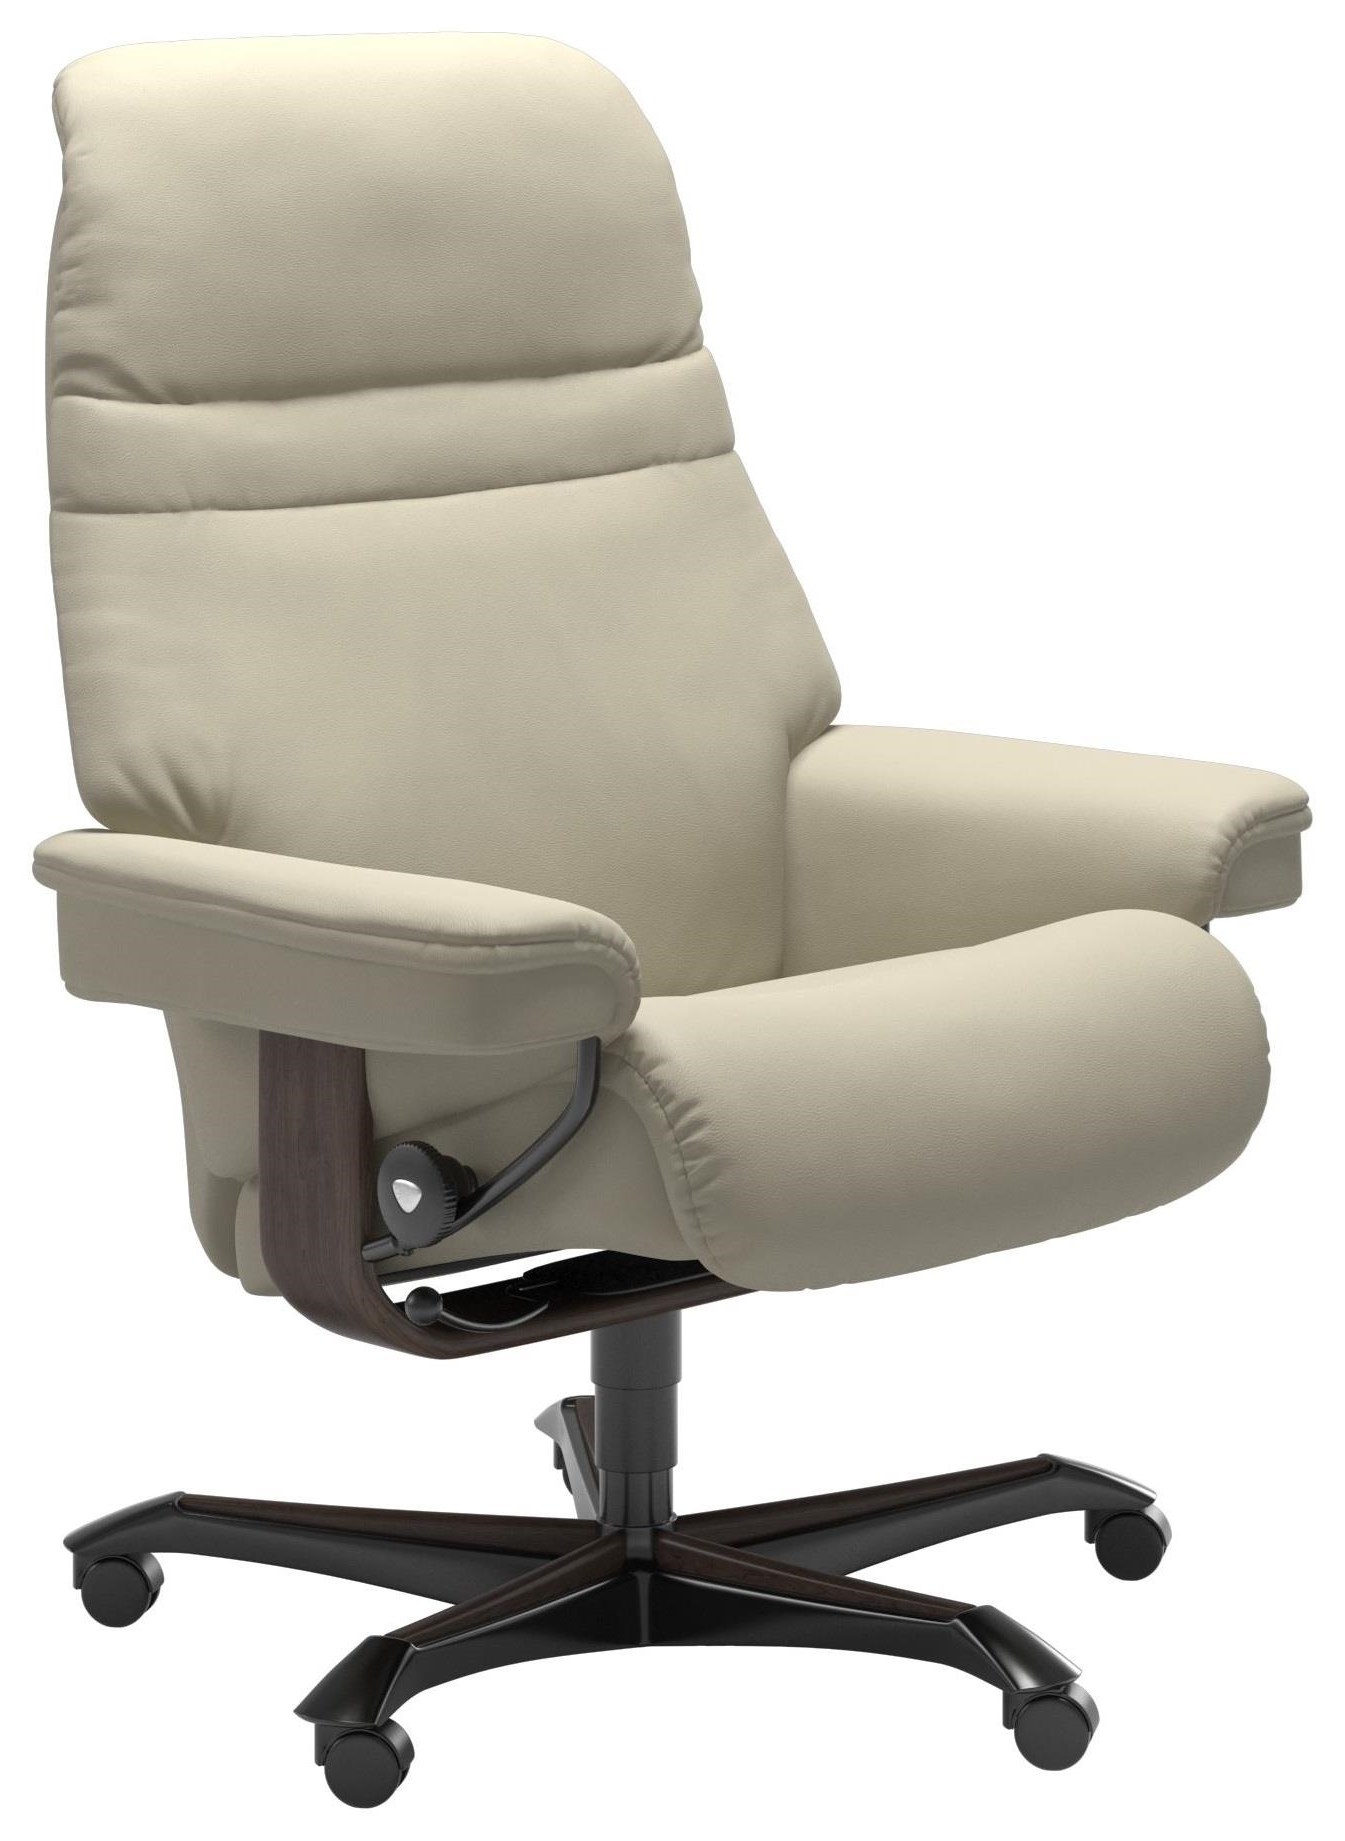 Sunrise Office Chair by Stressless at Bennett's Furniture and Mattresses